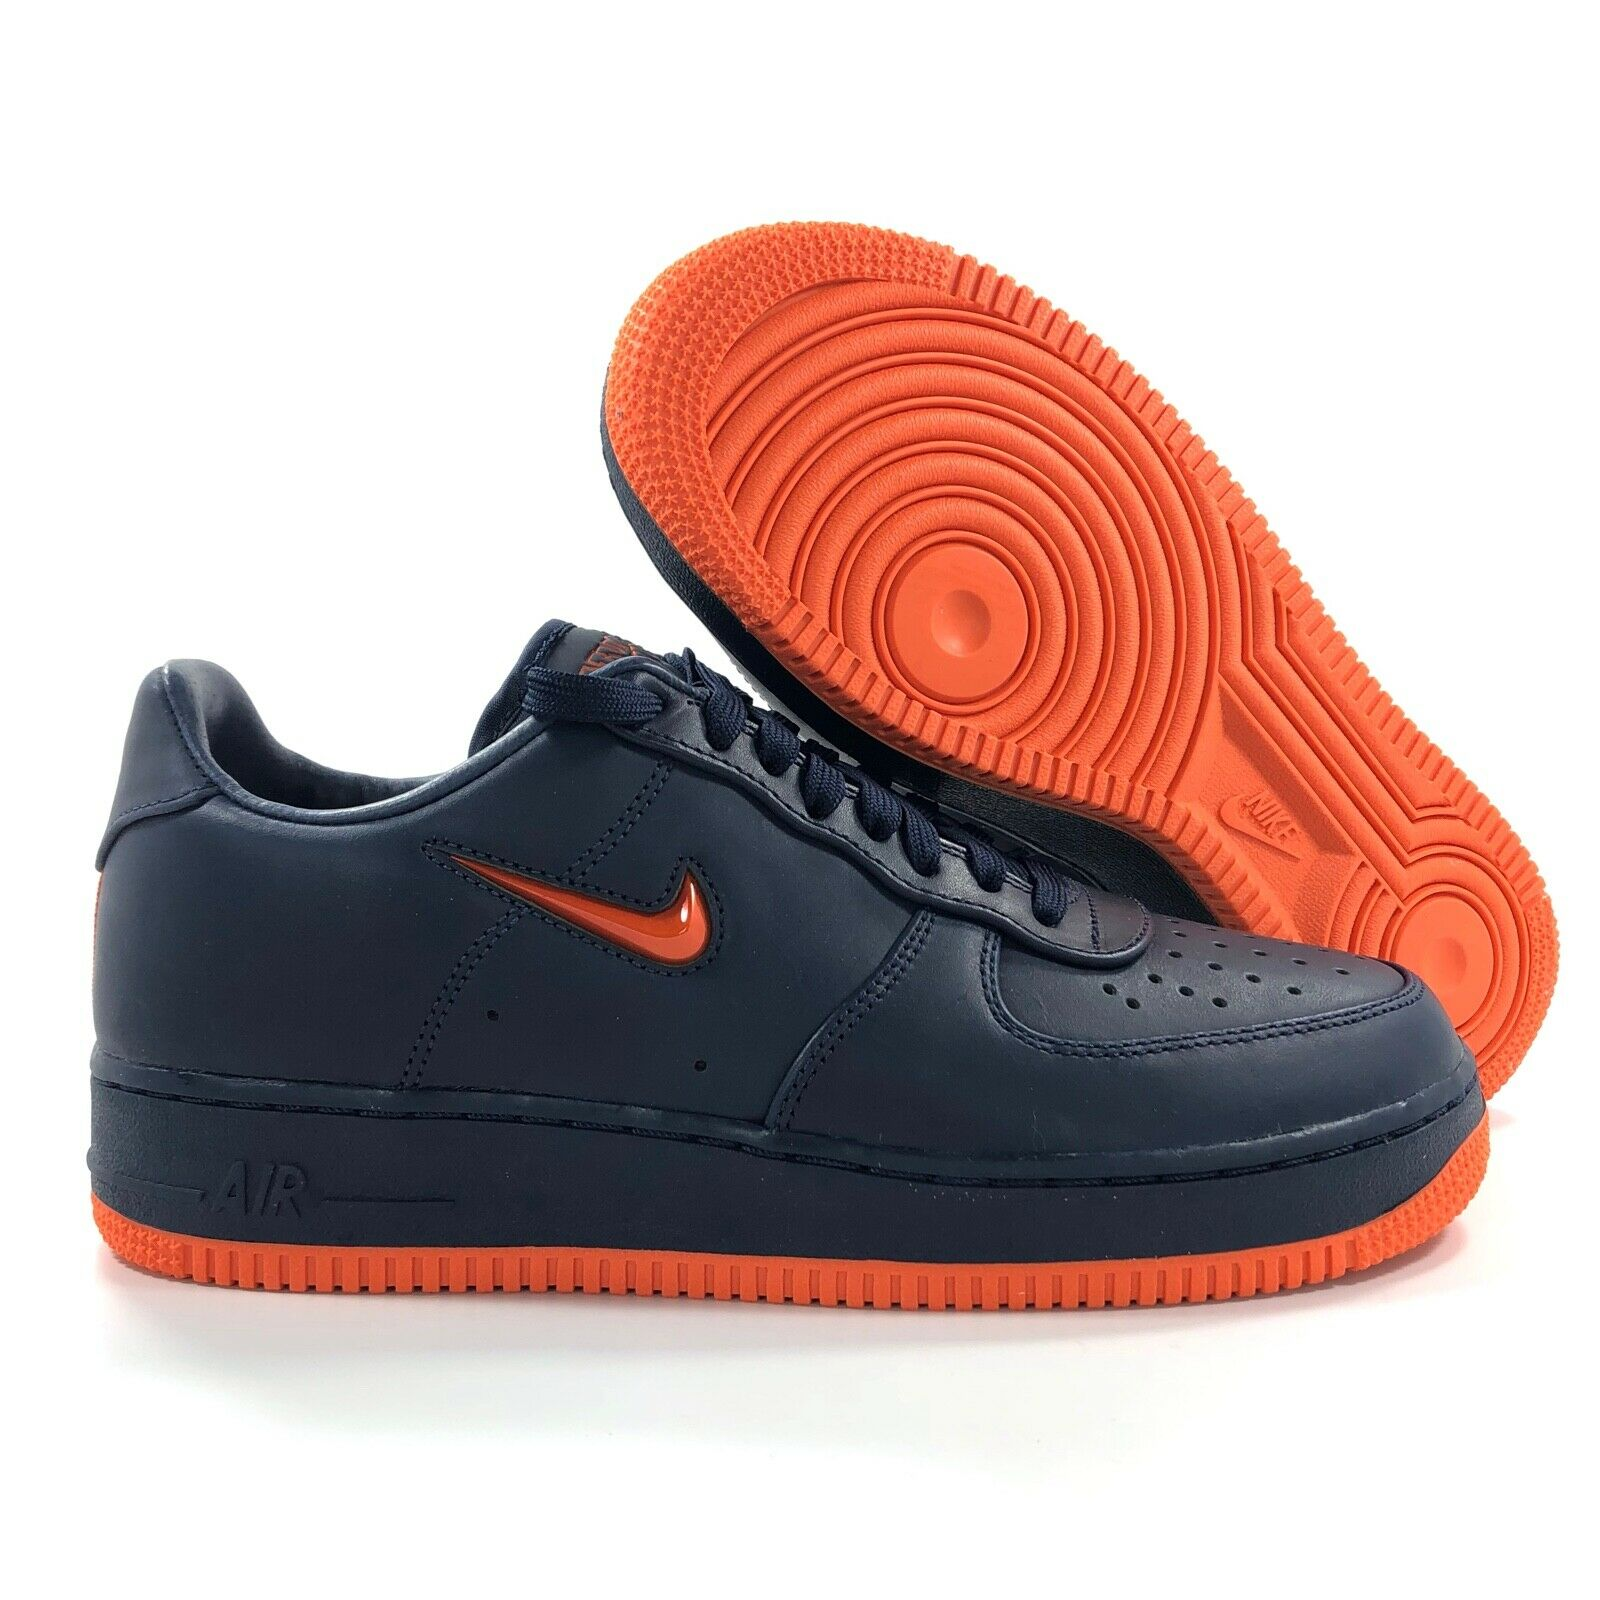 Nike Air Force 1 Low Retro PRM QS NYC Finest Navy Blue AO1635 400 Men's 10